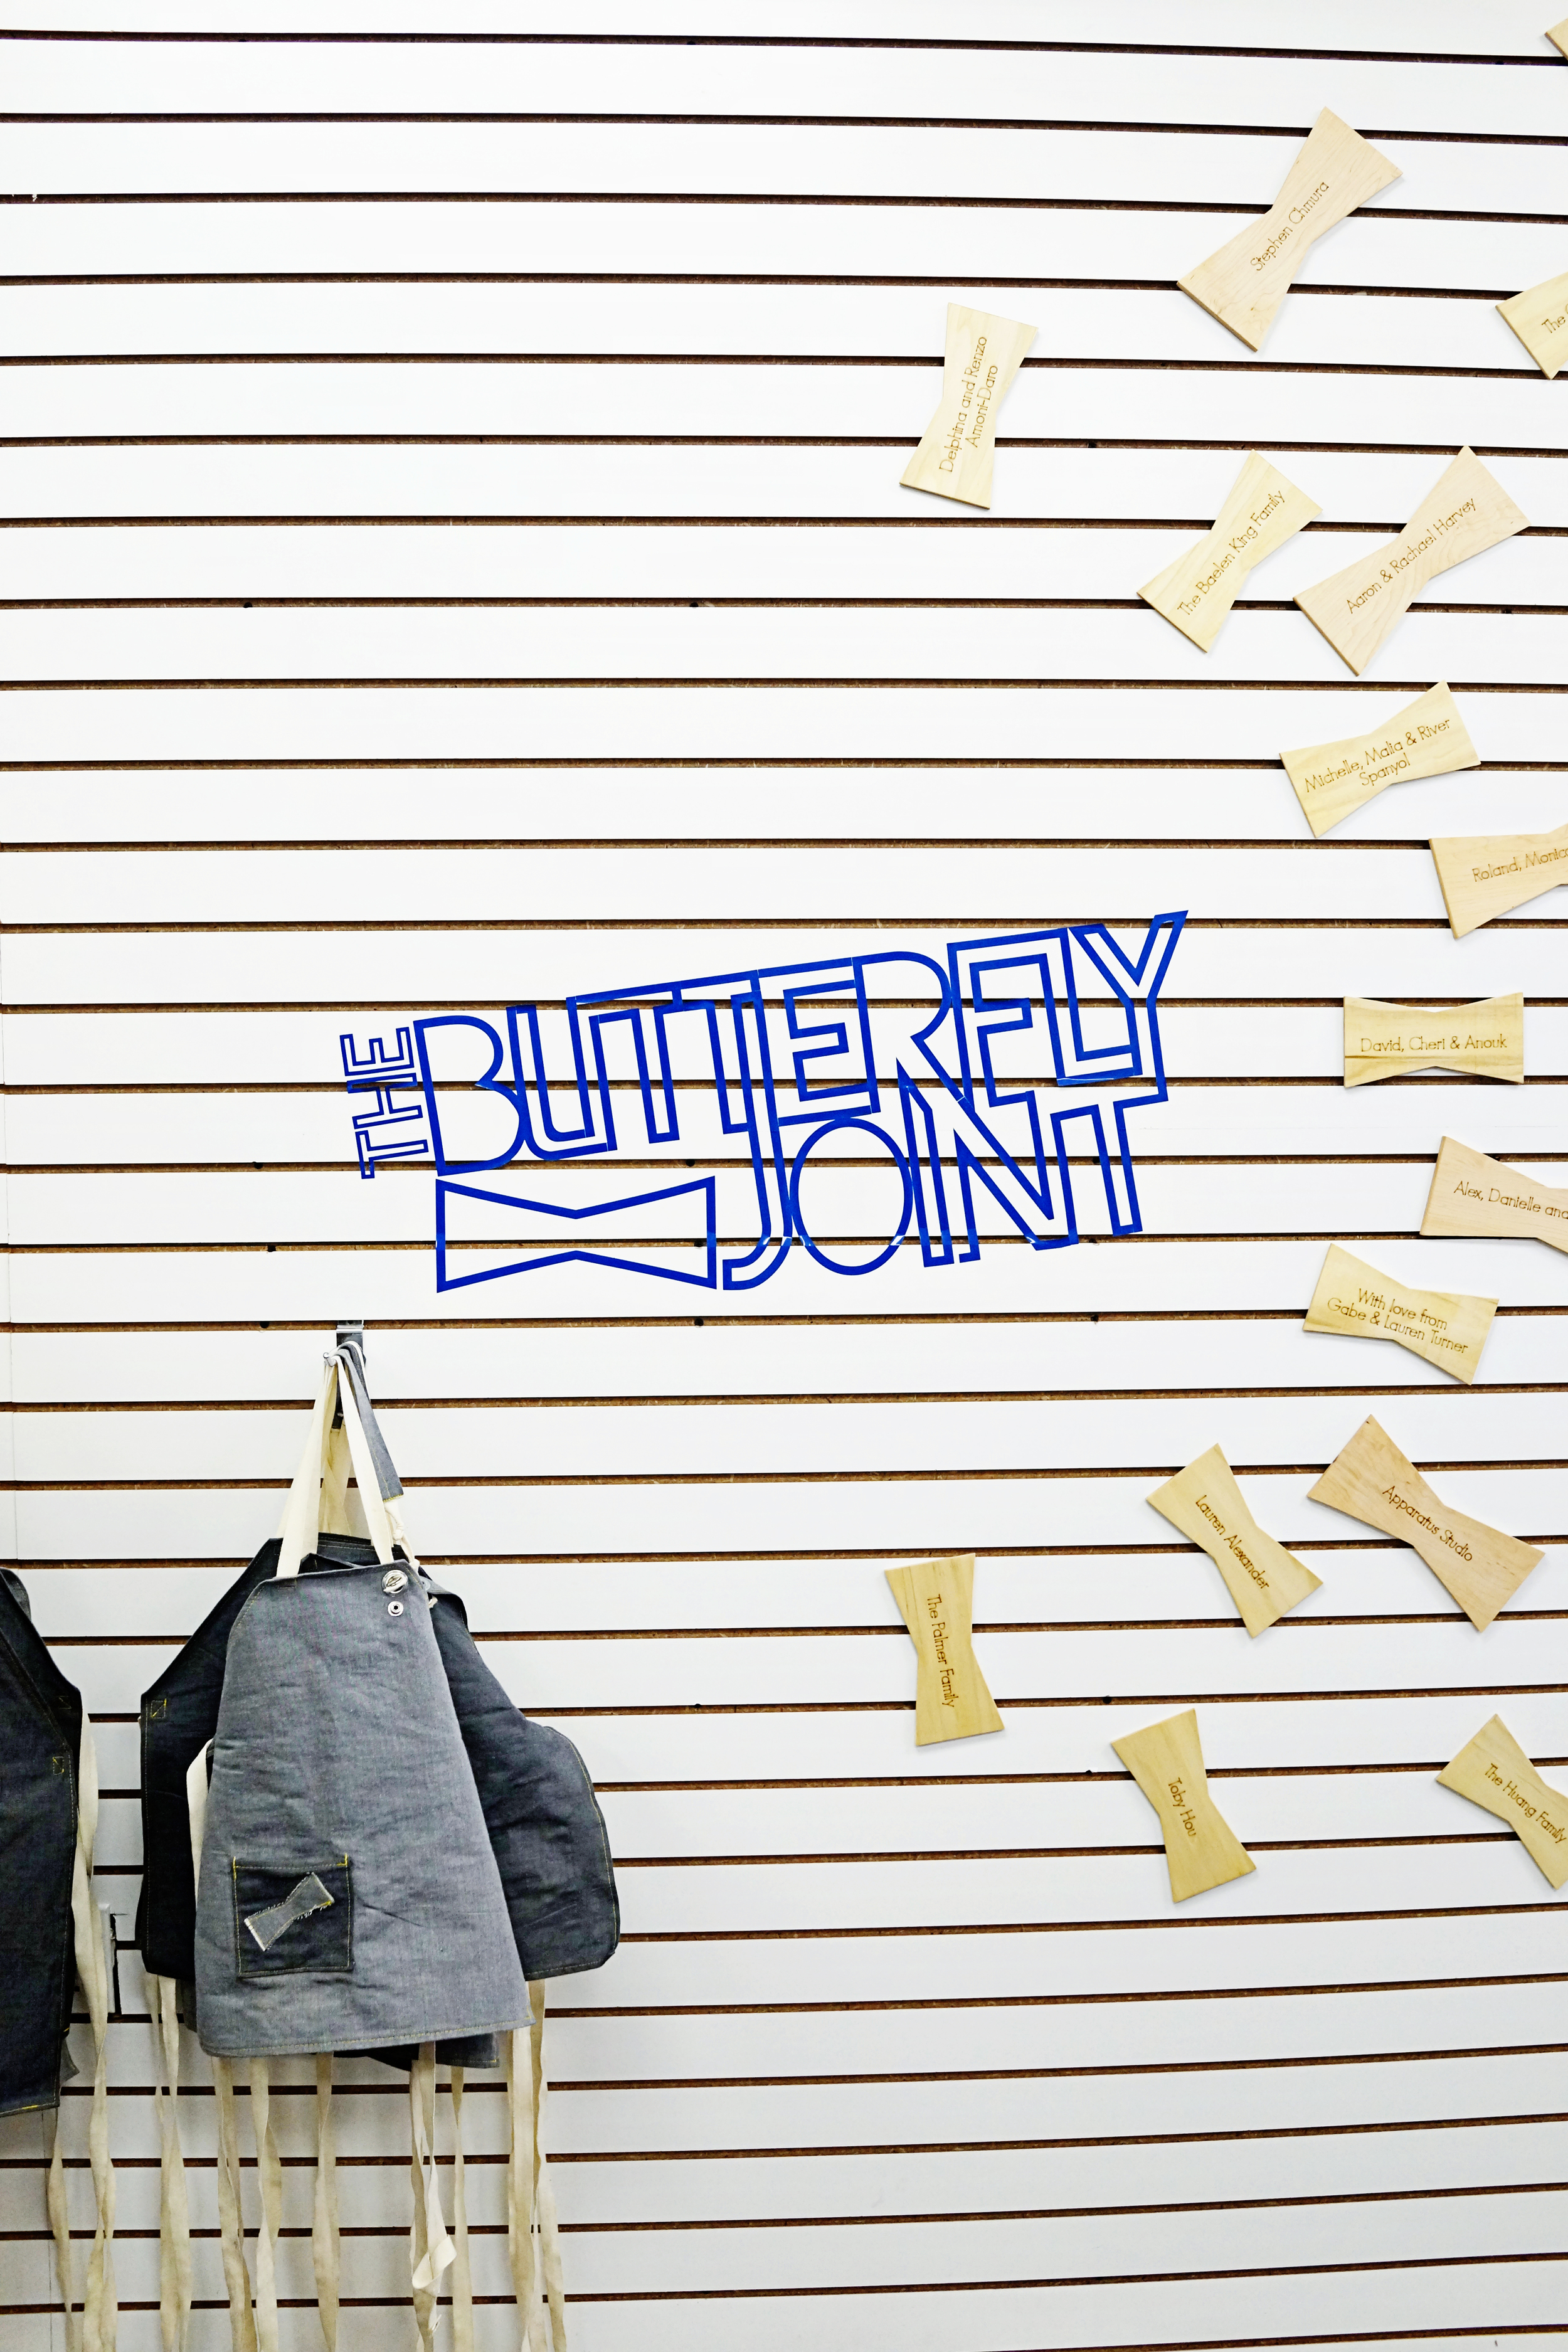 Favorites: The Butterfly Joint  /  www.goodonpaperdesign.com/blog  /  @good_on_paper